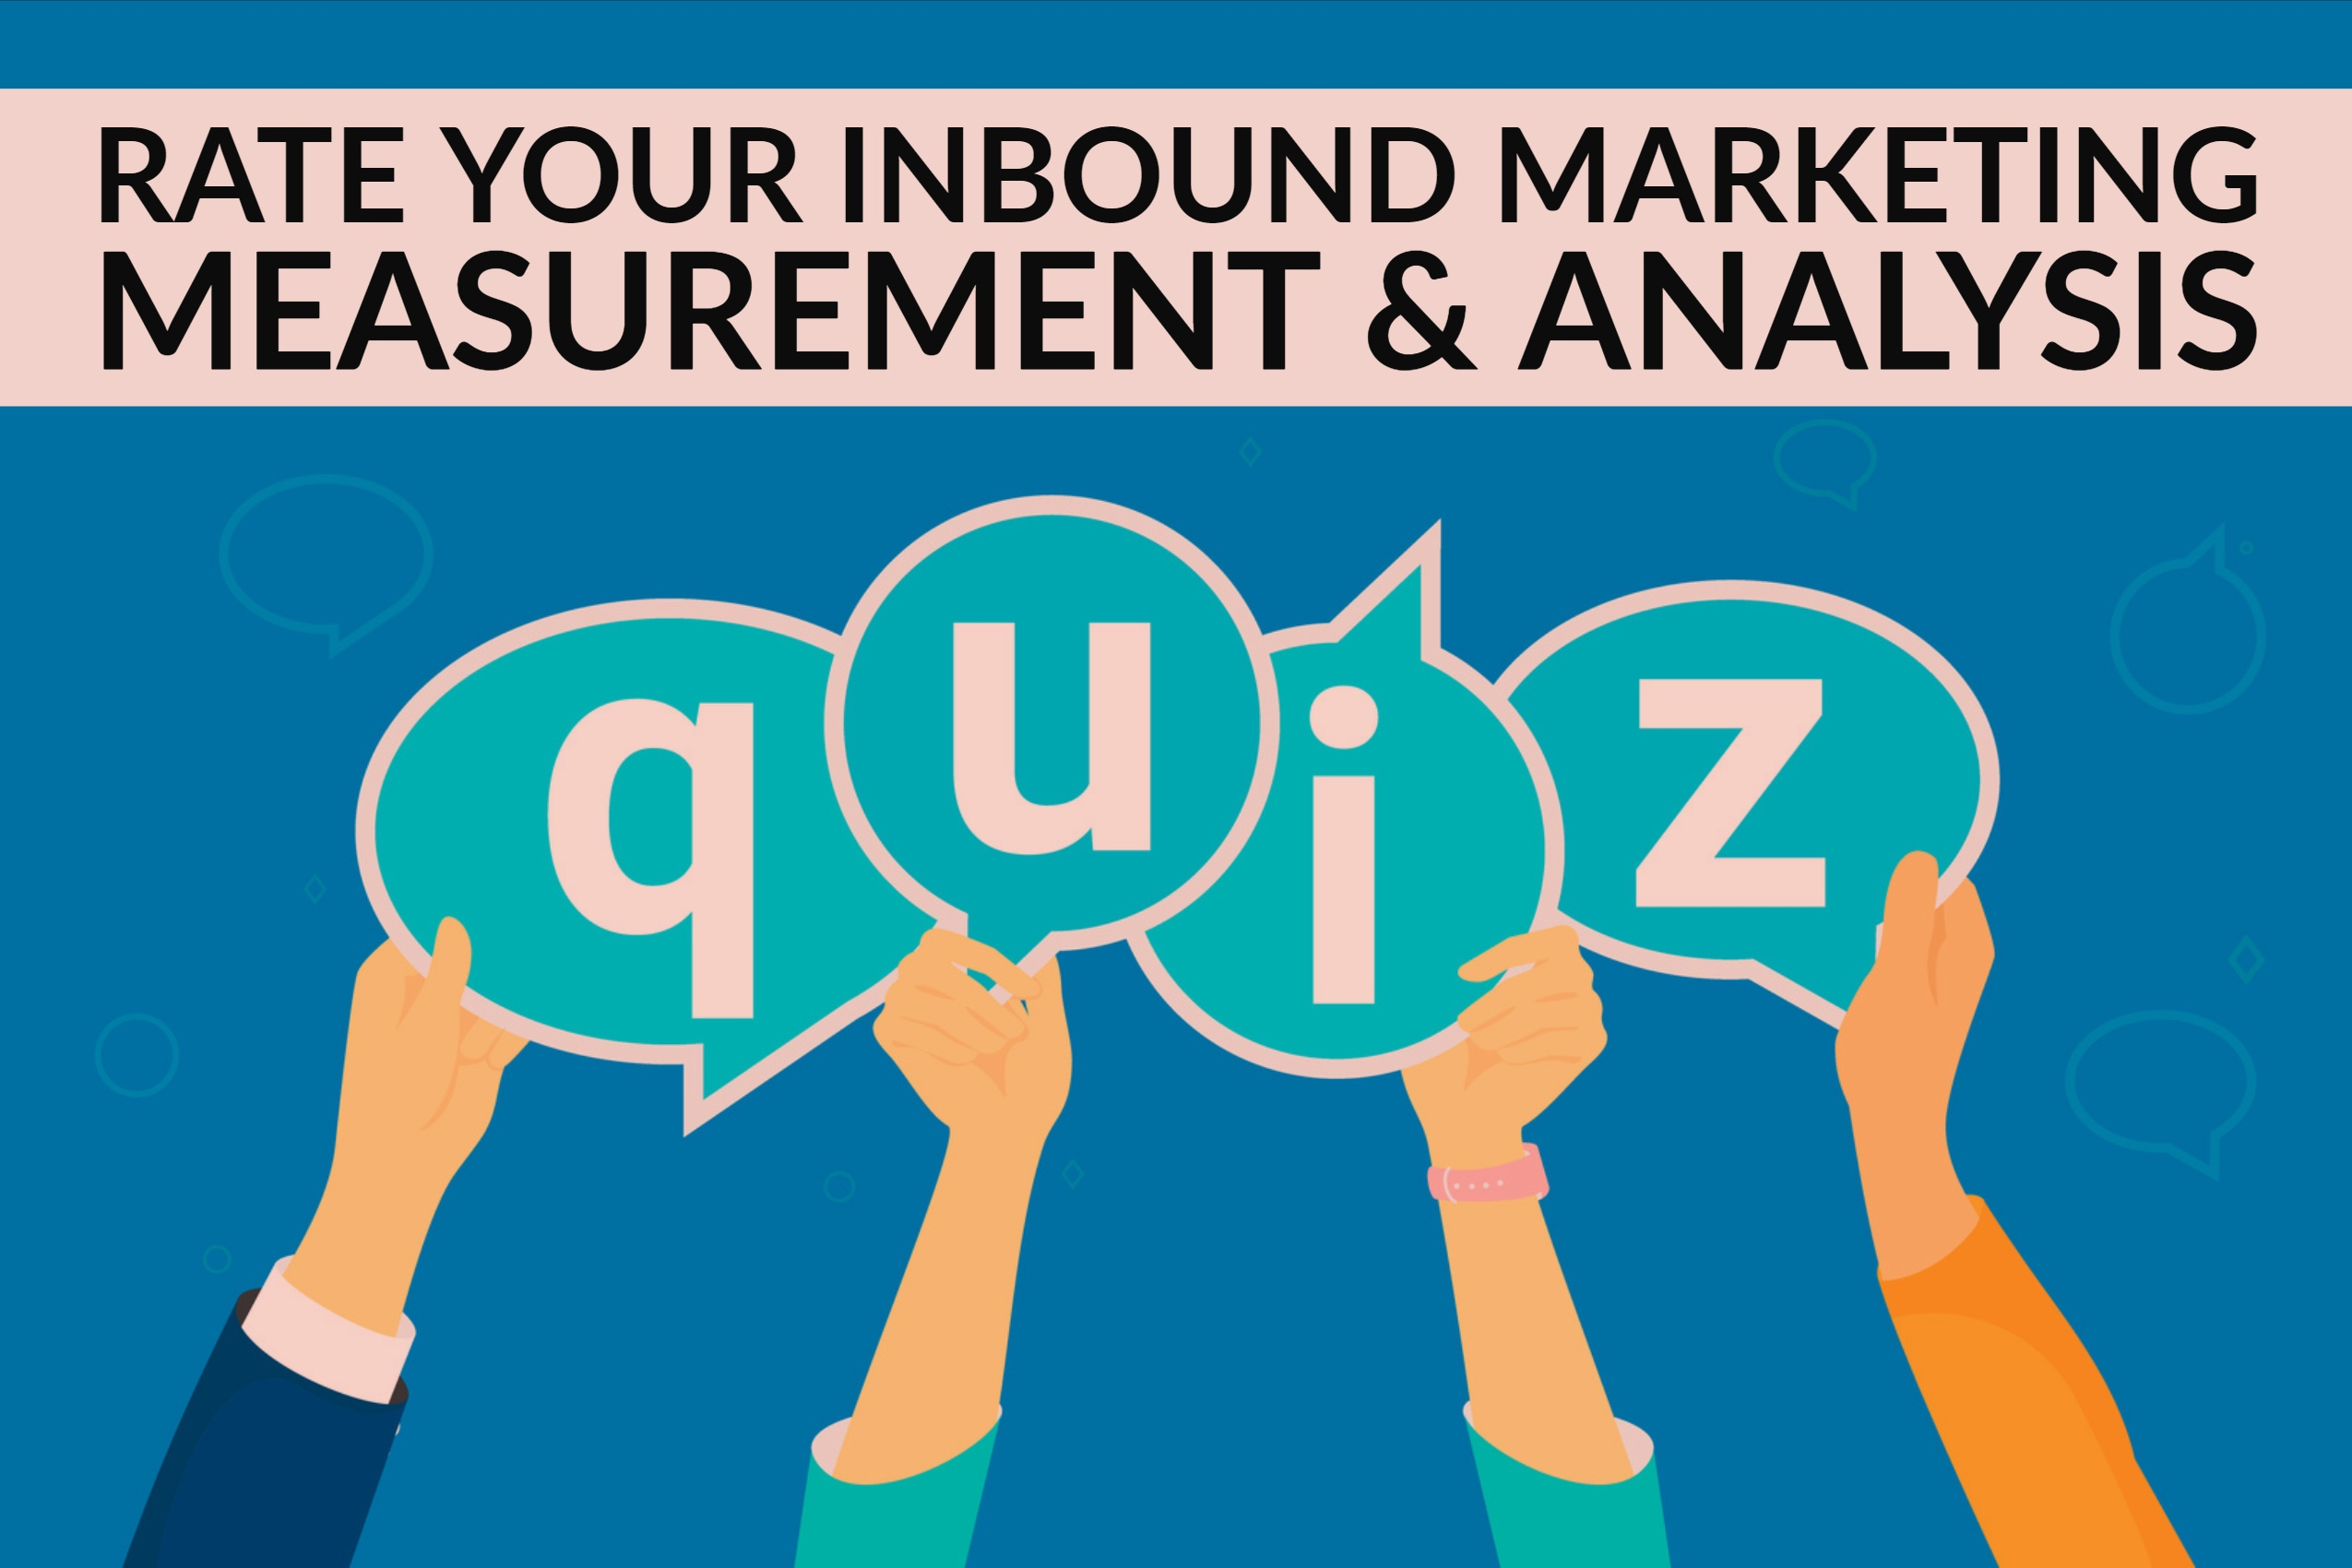 Rate Your Inbound Marketing Measurement & Analysis (quiz) (1)